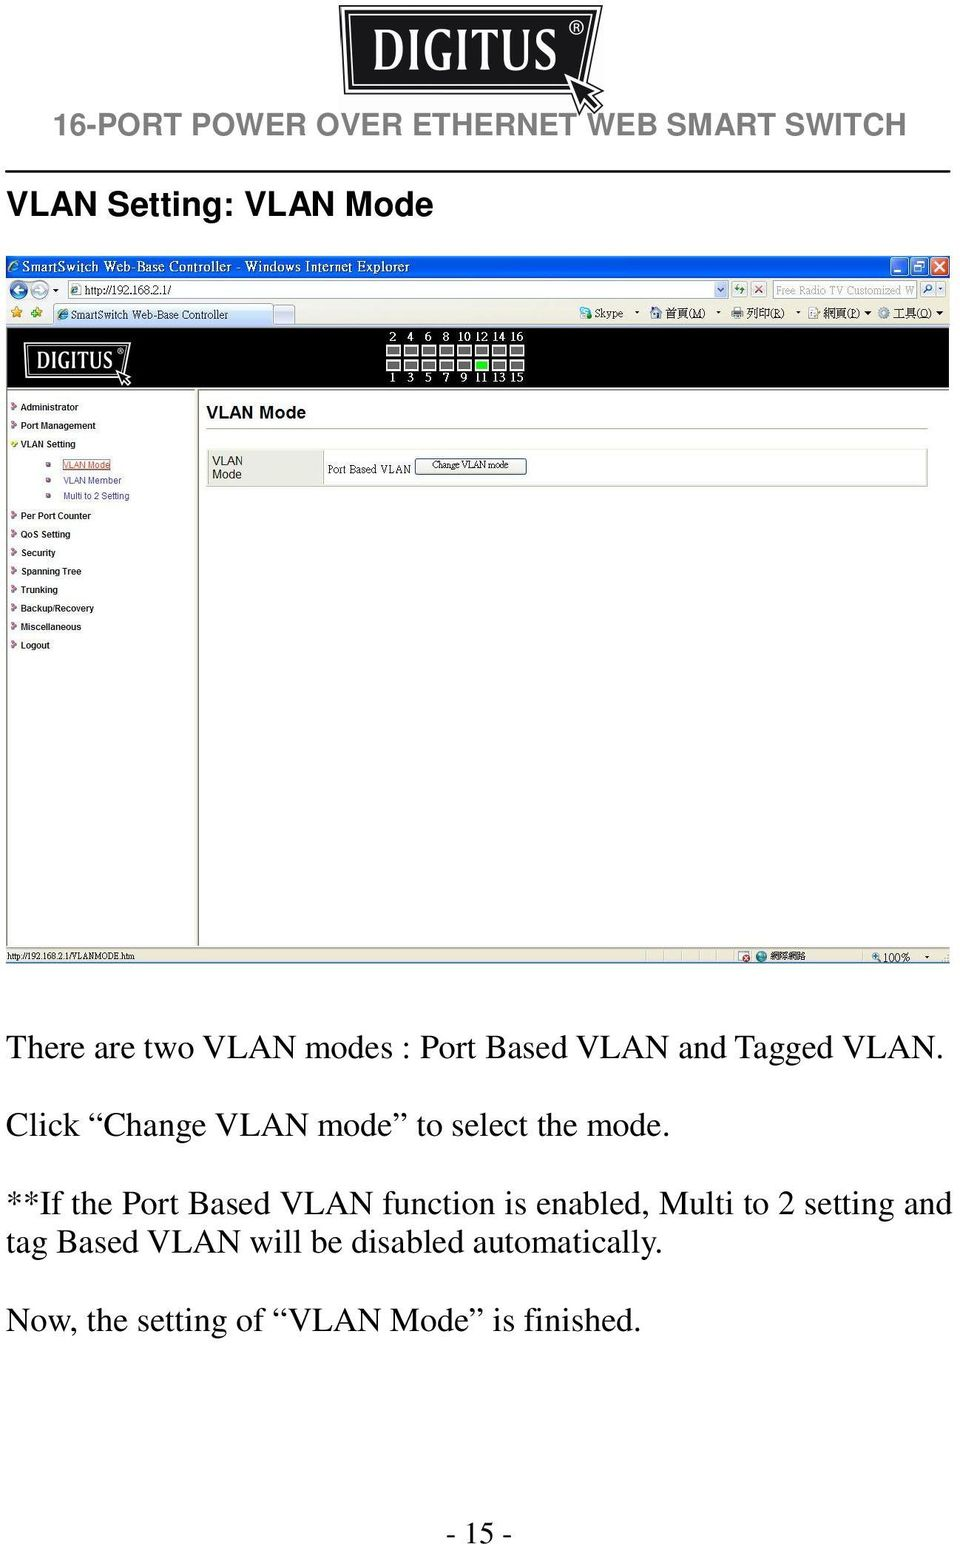 **If the Port Based VLAN function is enabled, Multi to 2 setting and tag